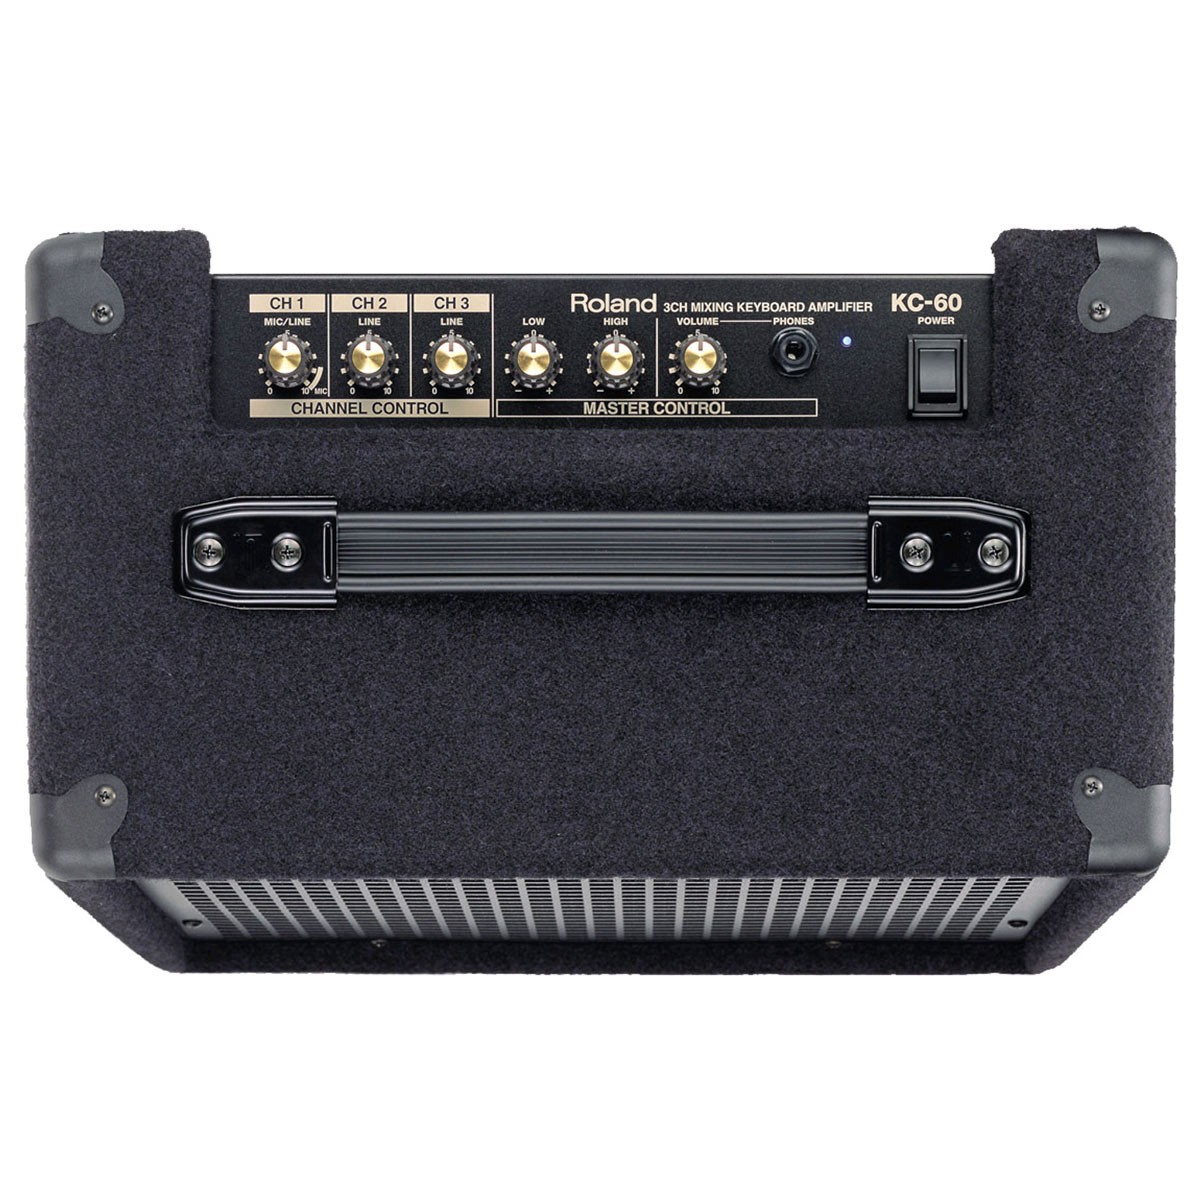 roland kc 60 keyboard amplifier elevated audio. Black Bedroom Furniture Sets. Home Design Ideas